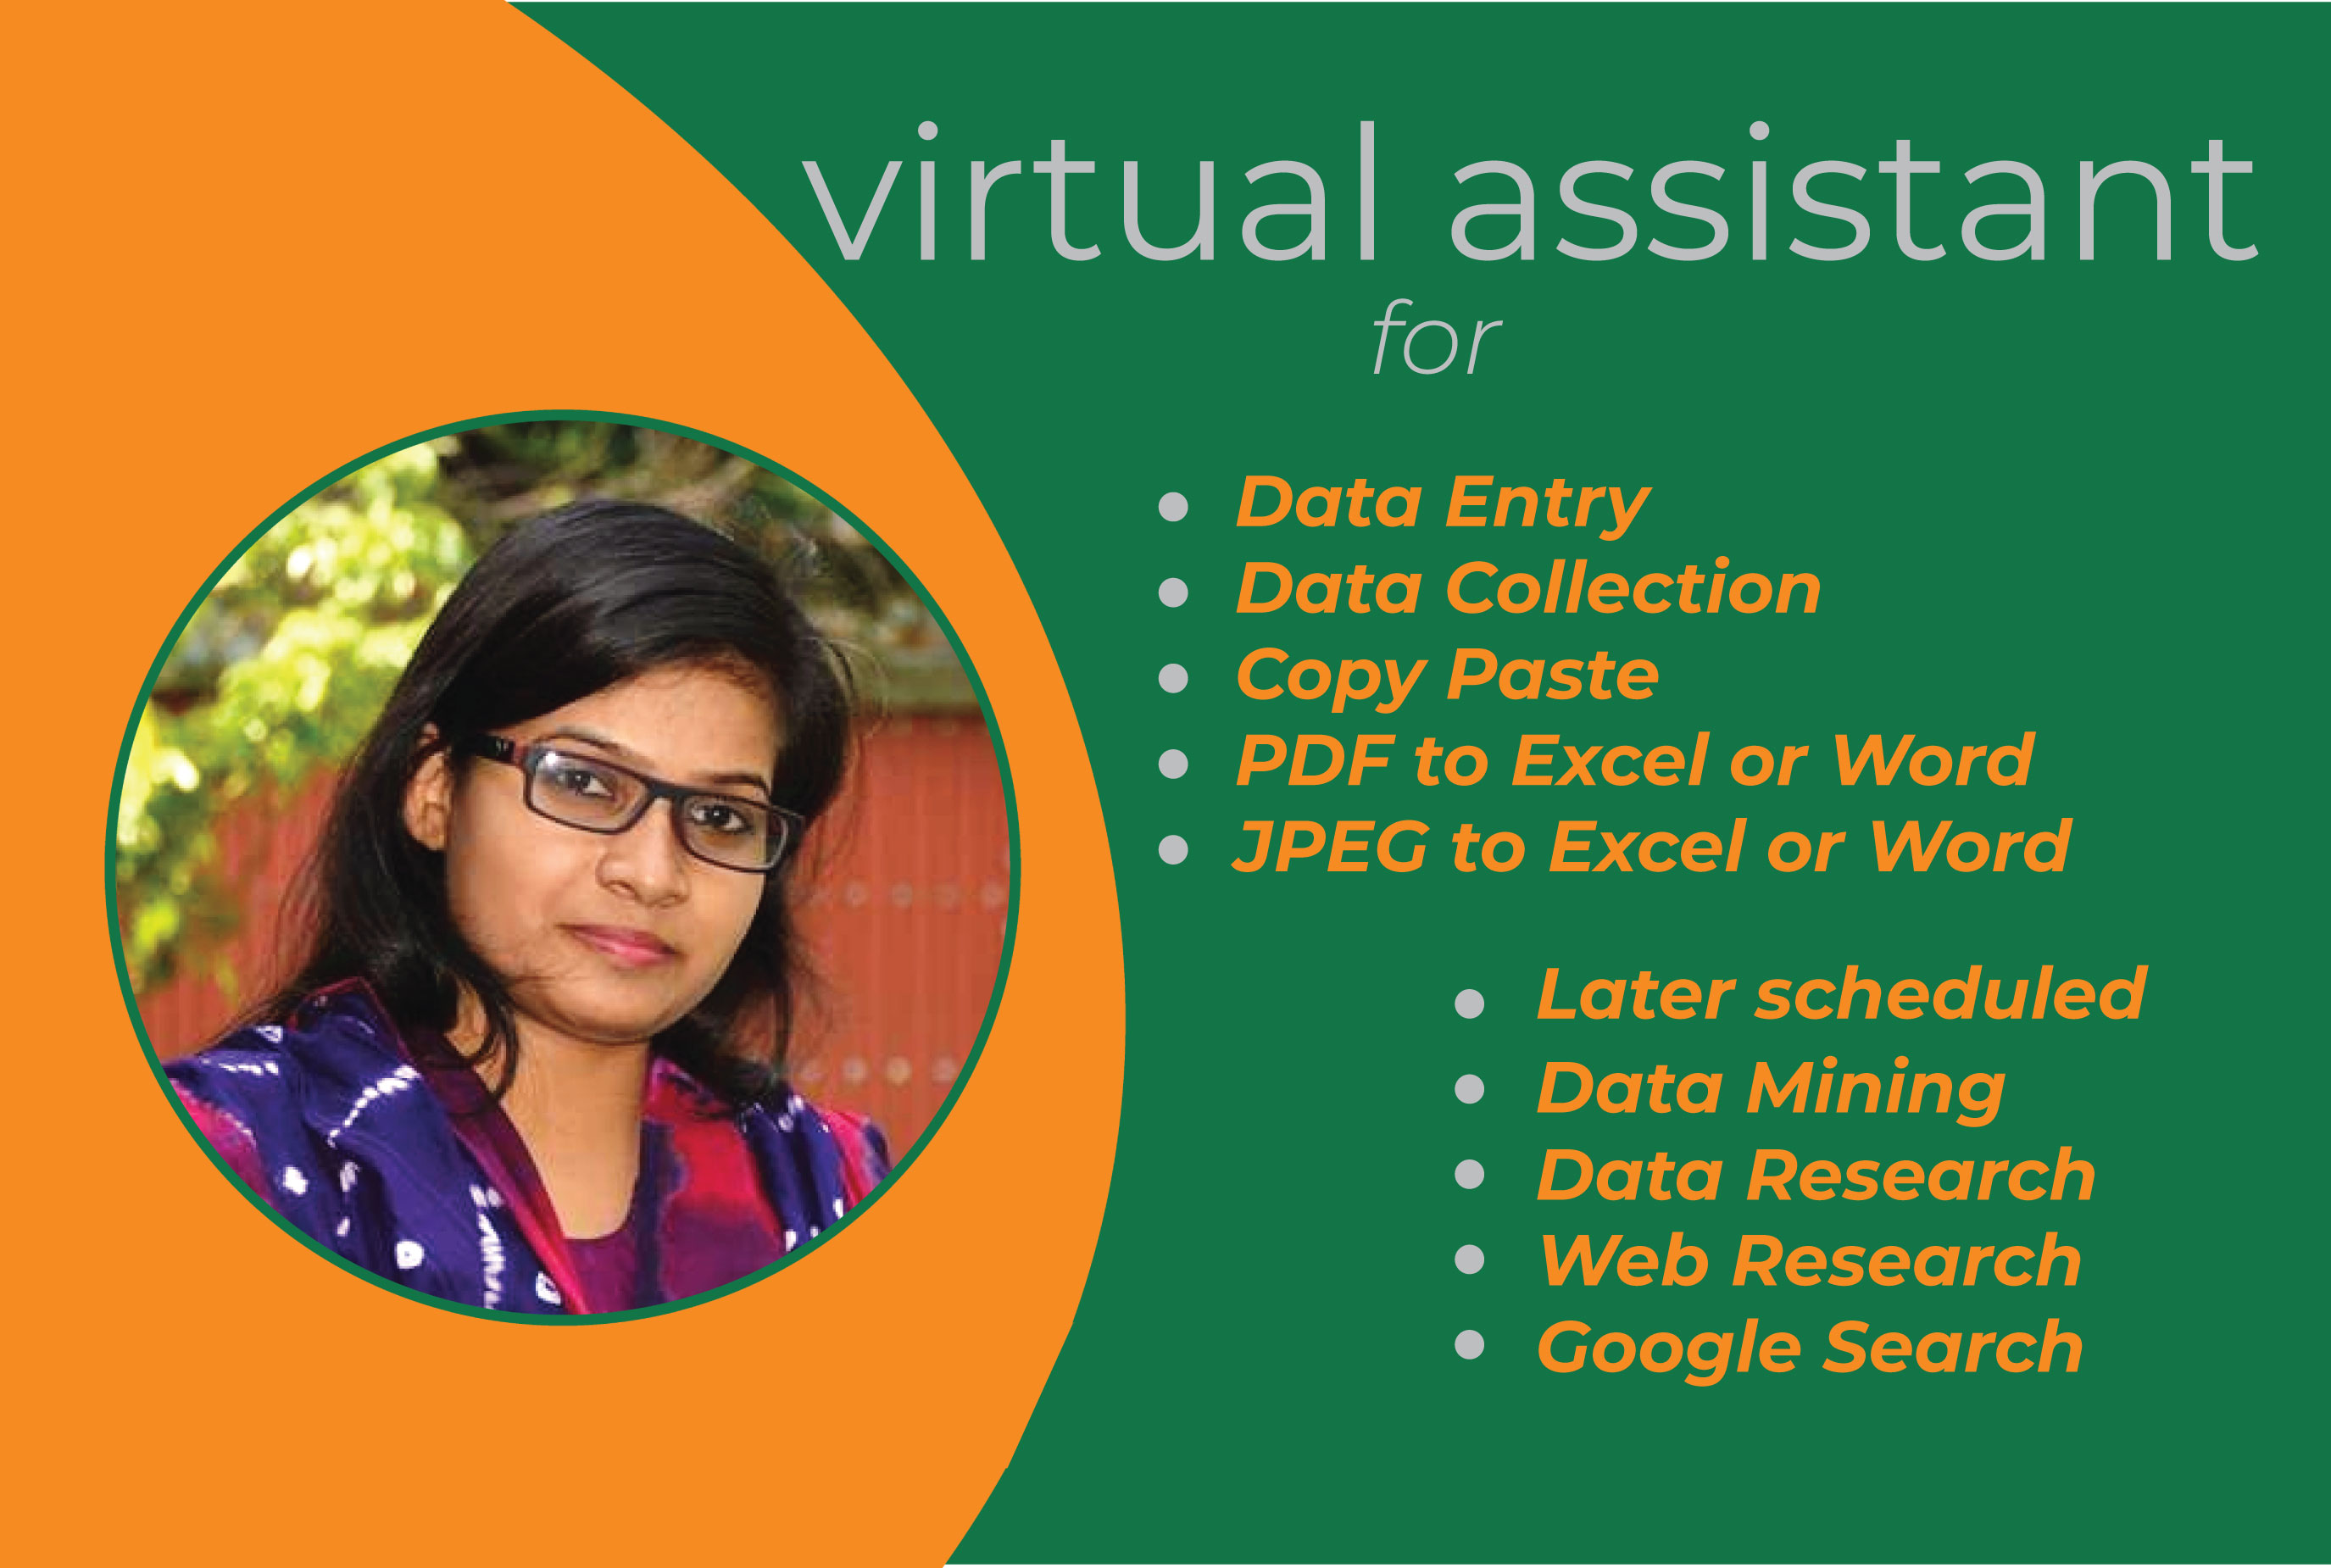 I will be your virtual assistant for any type of Microsoft Word and Excel